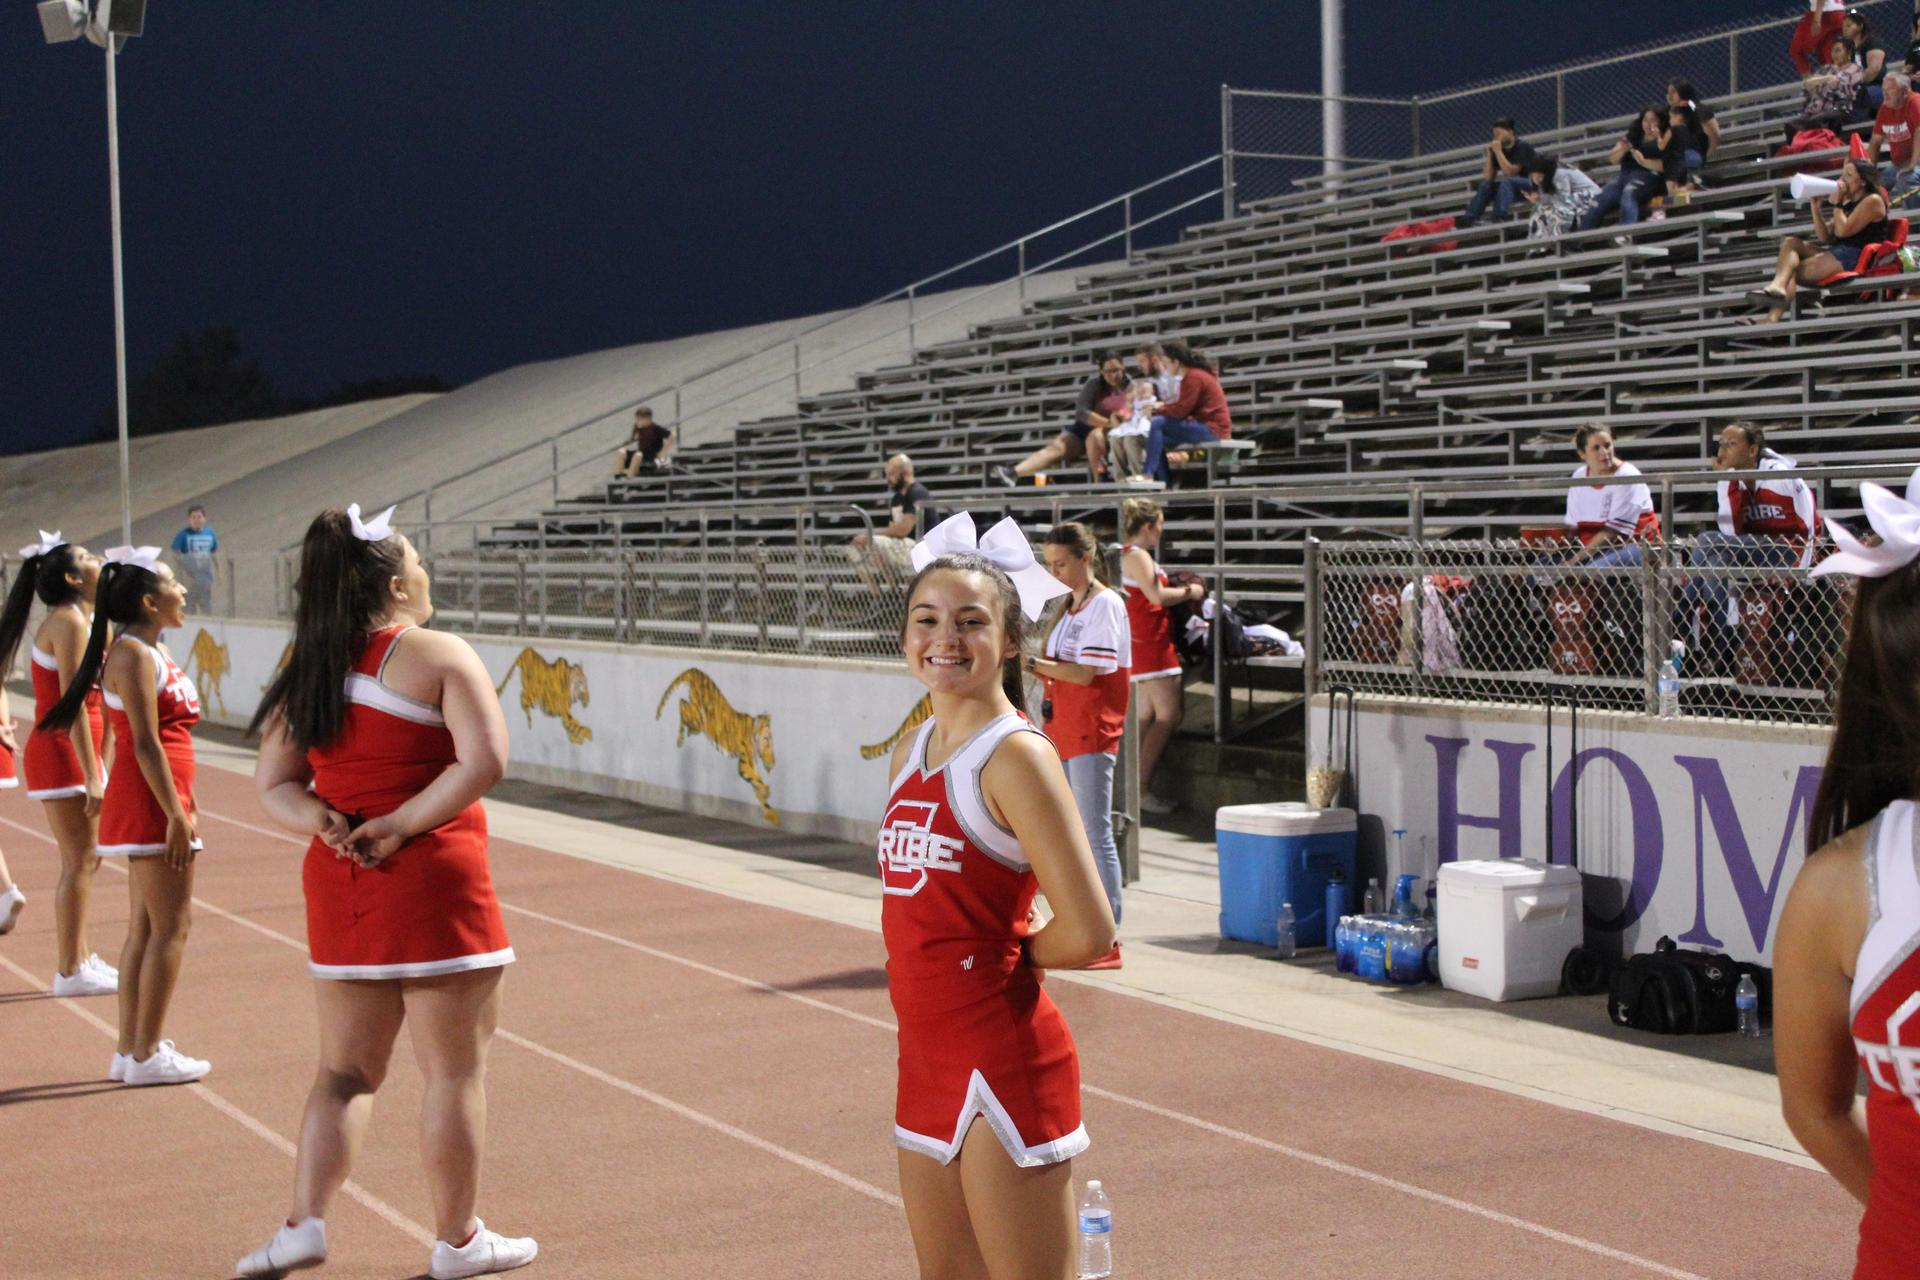 Cheerleaders at Lemoore